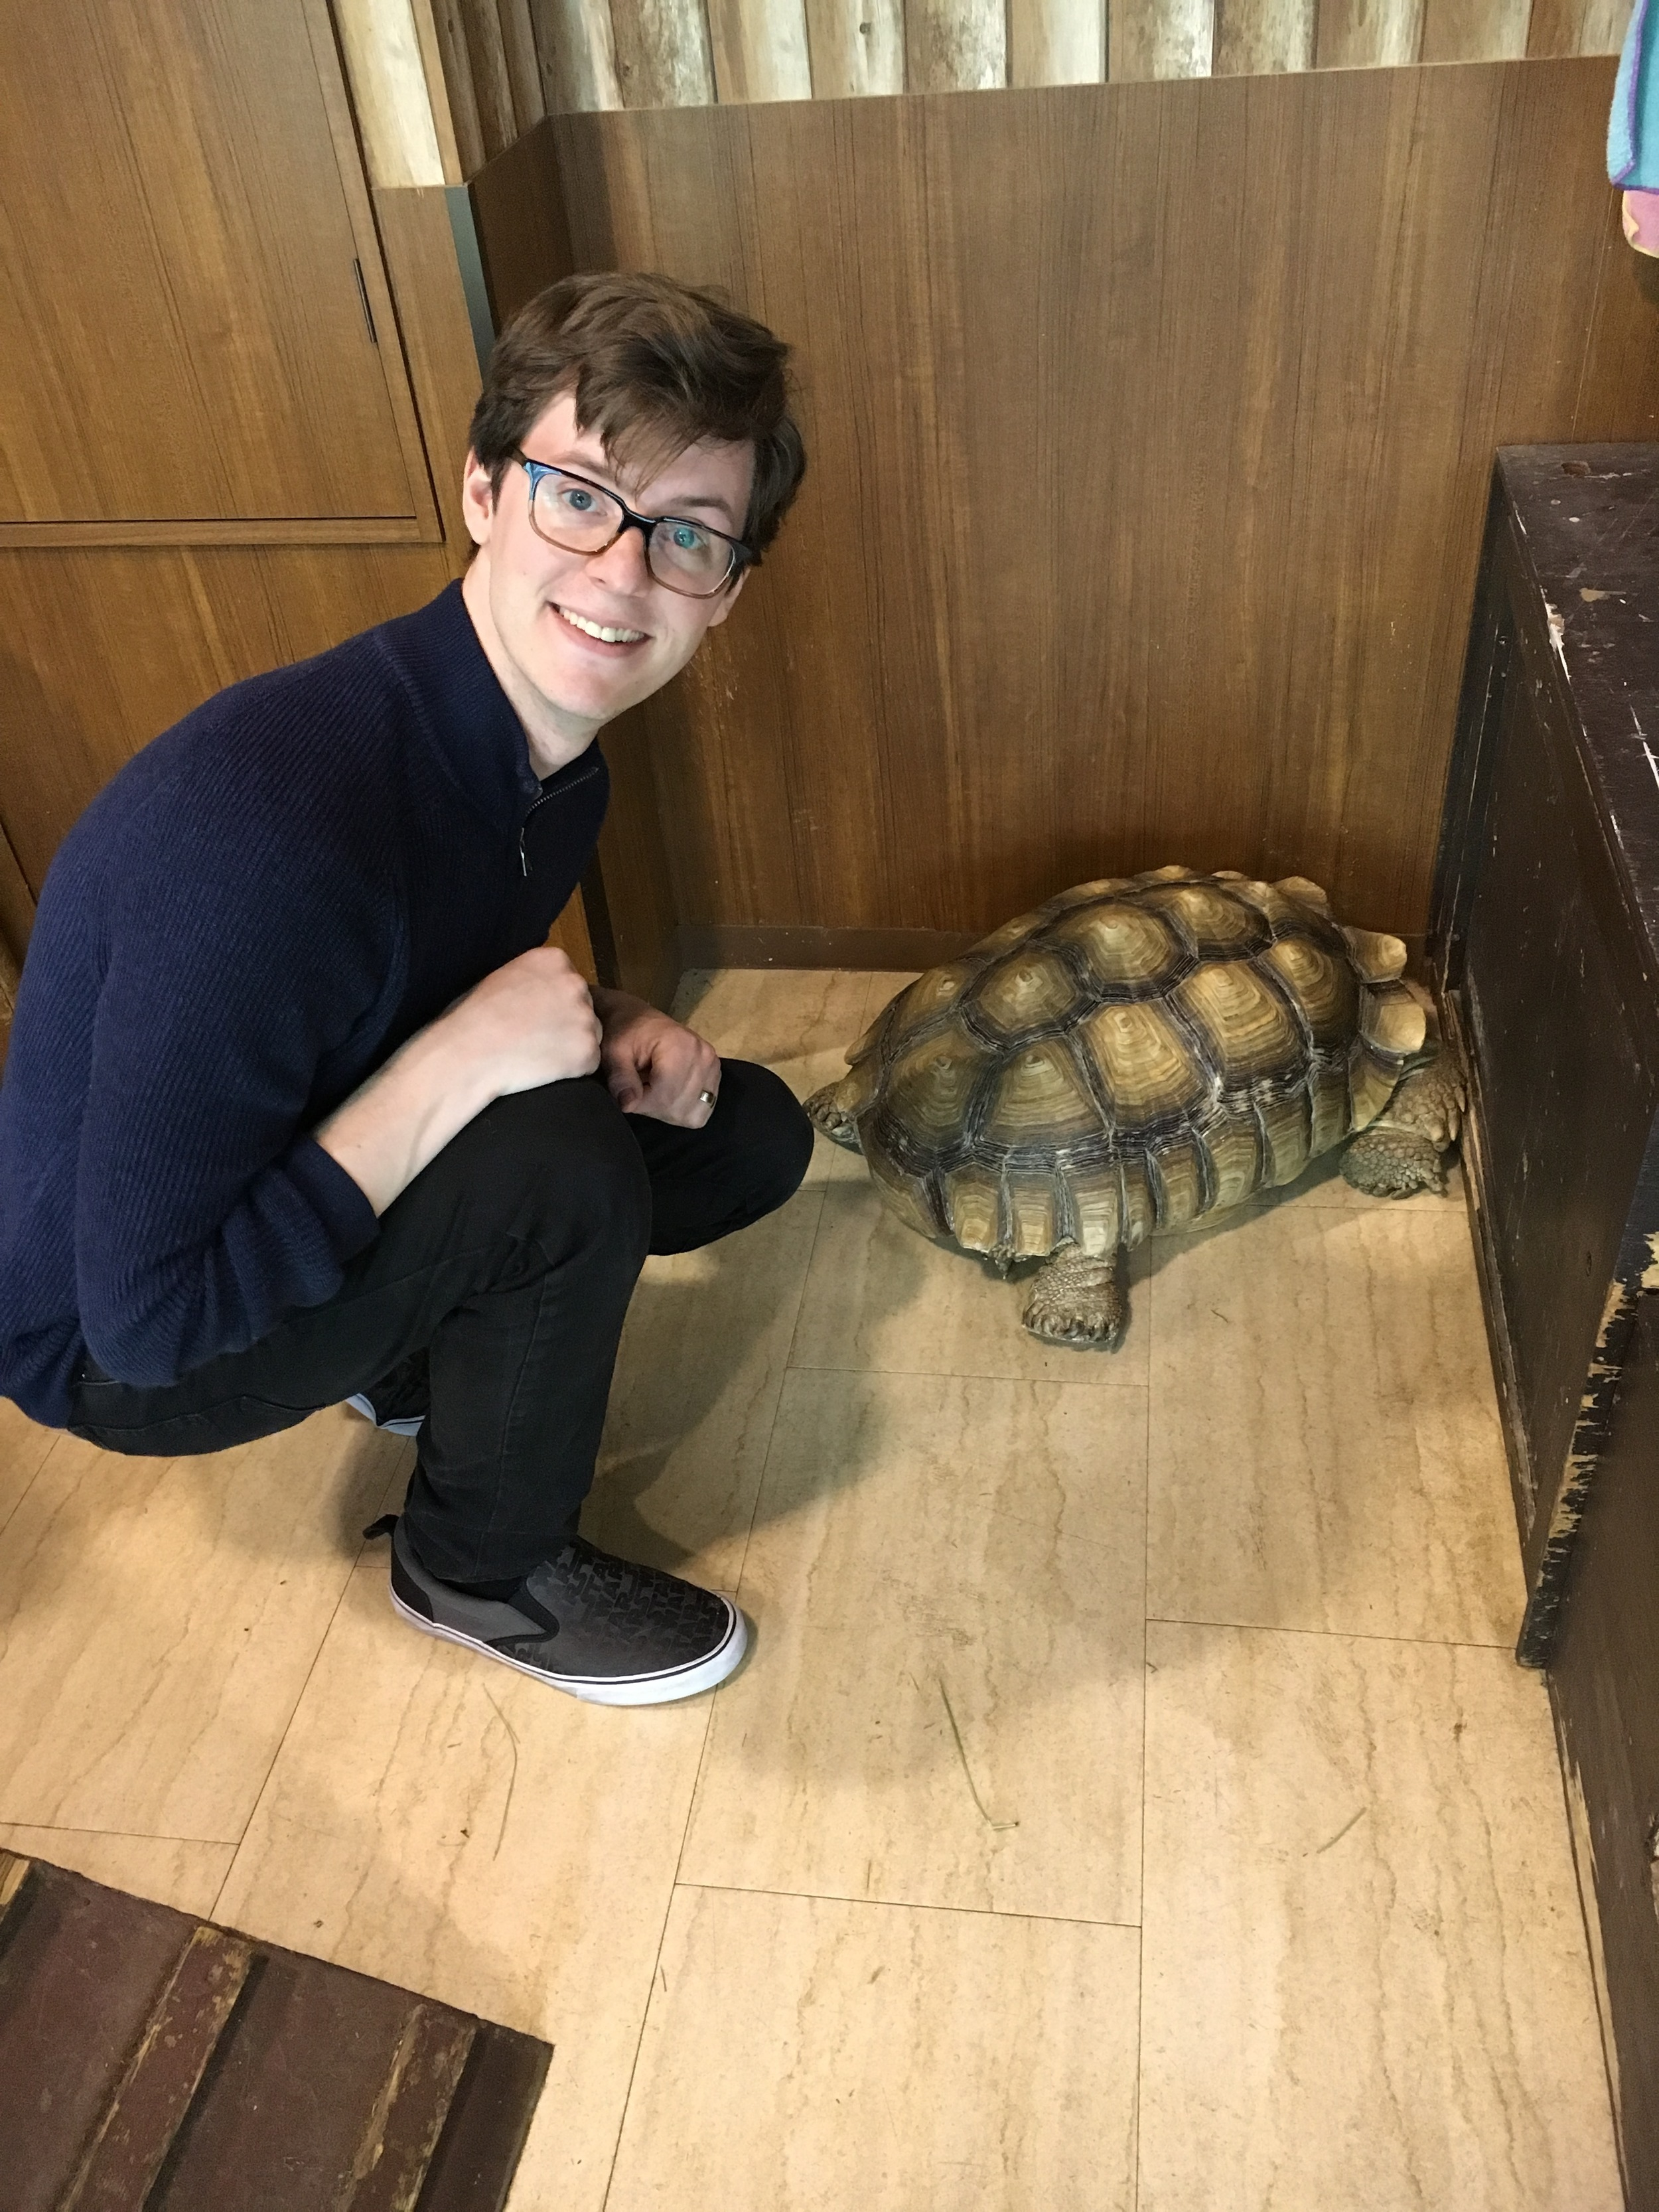 Michael and the tortoise.